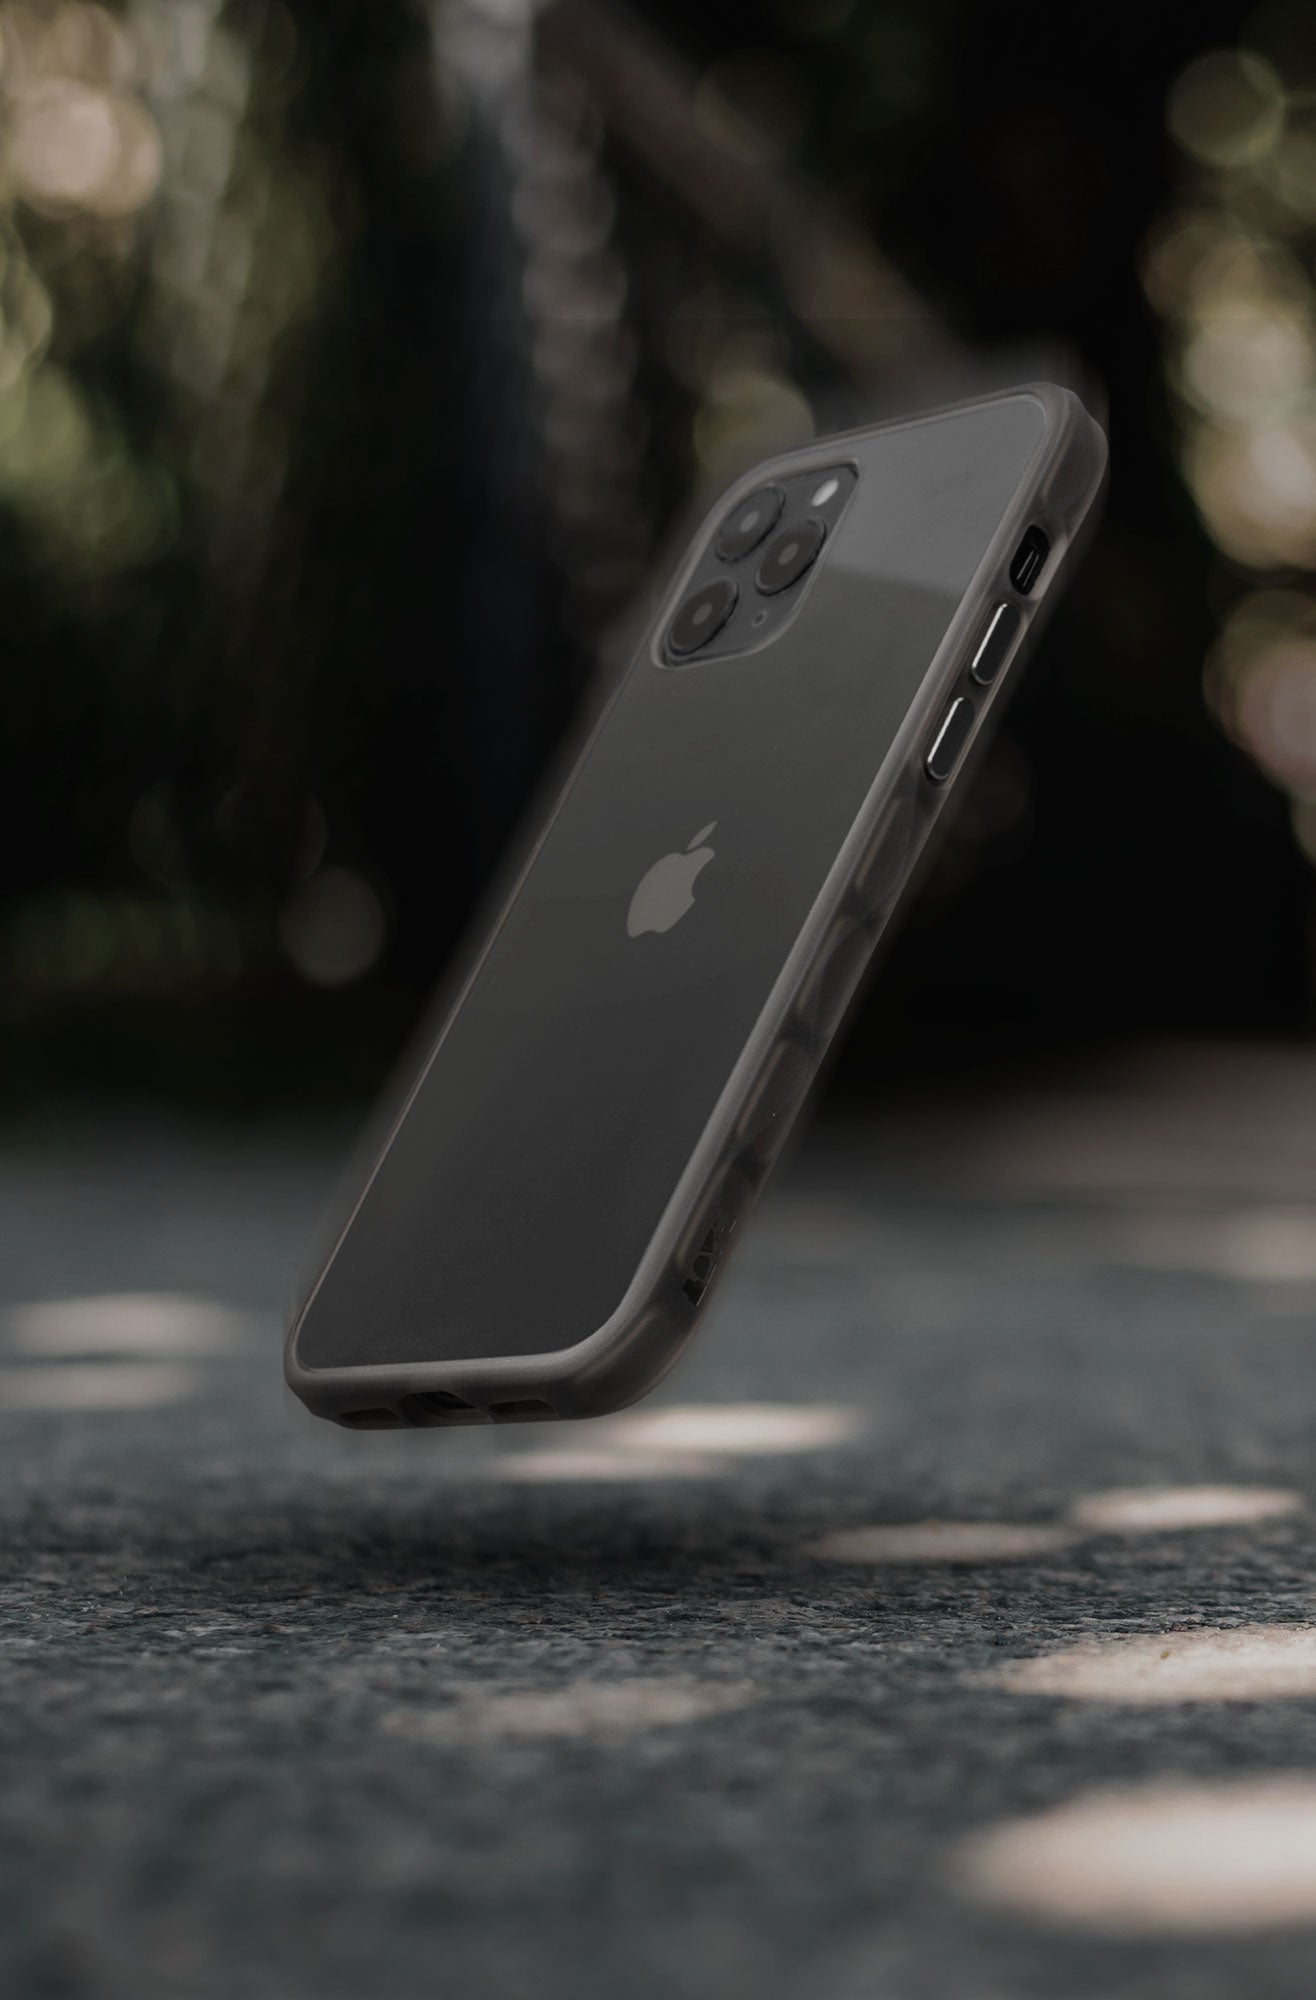 LAUT - CRYSTAL MATTER (IMPKT) - TINTED SERIES case for iPhone 12 series - 20ft./6m DROP TESTED